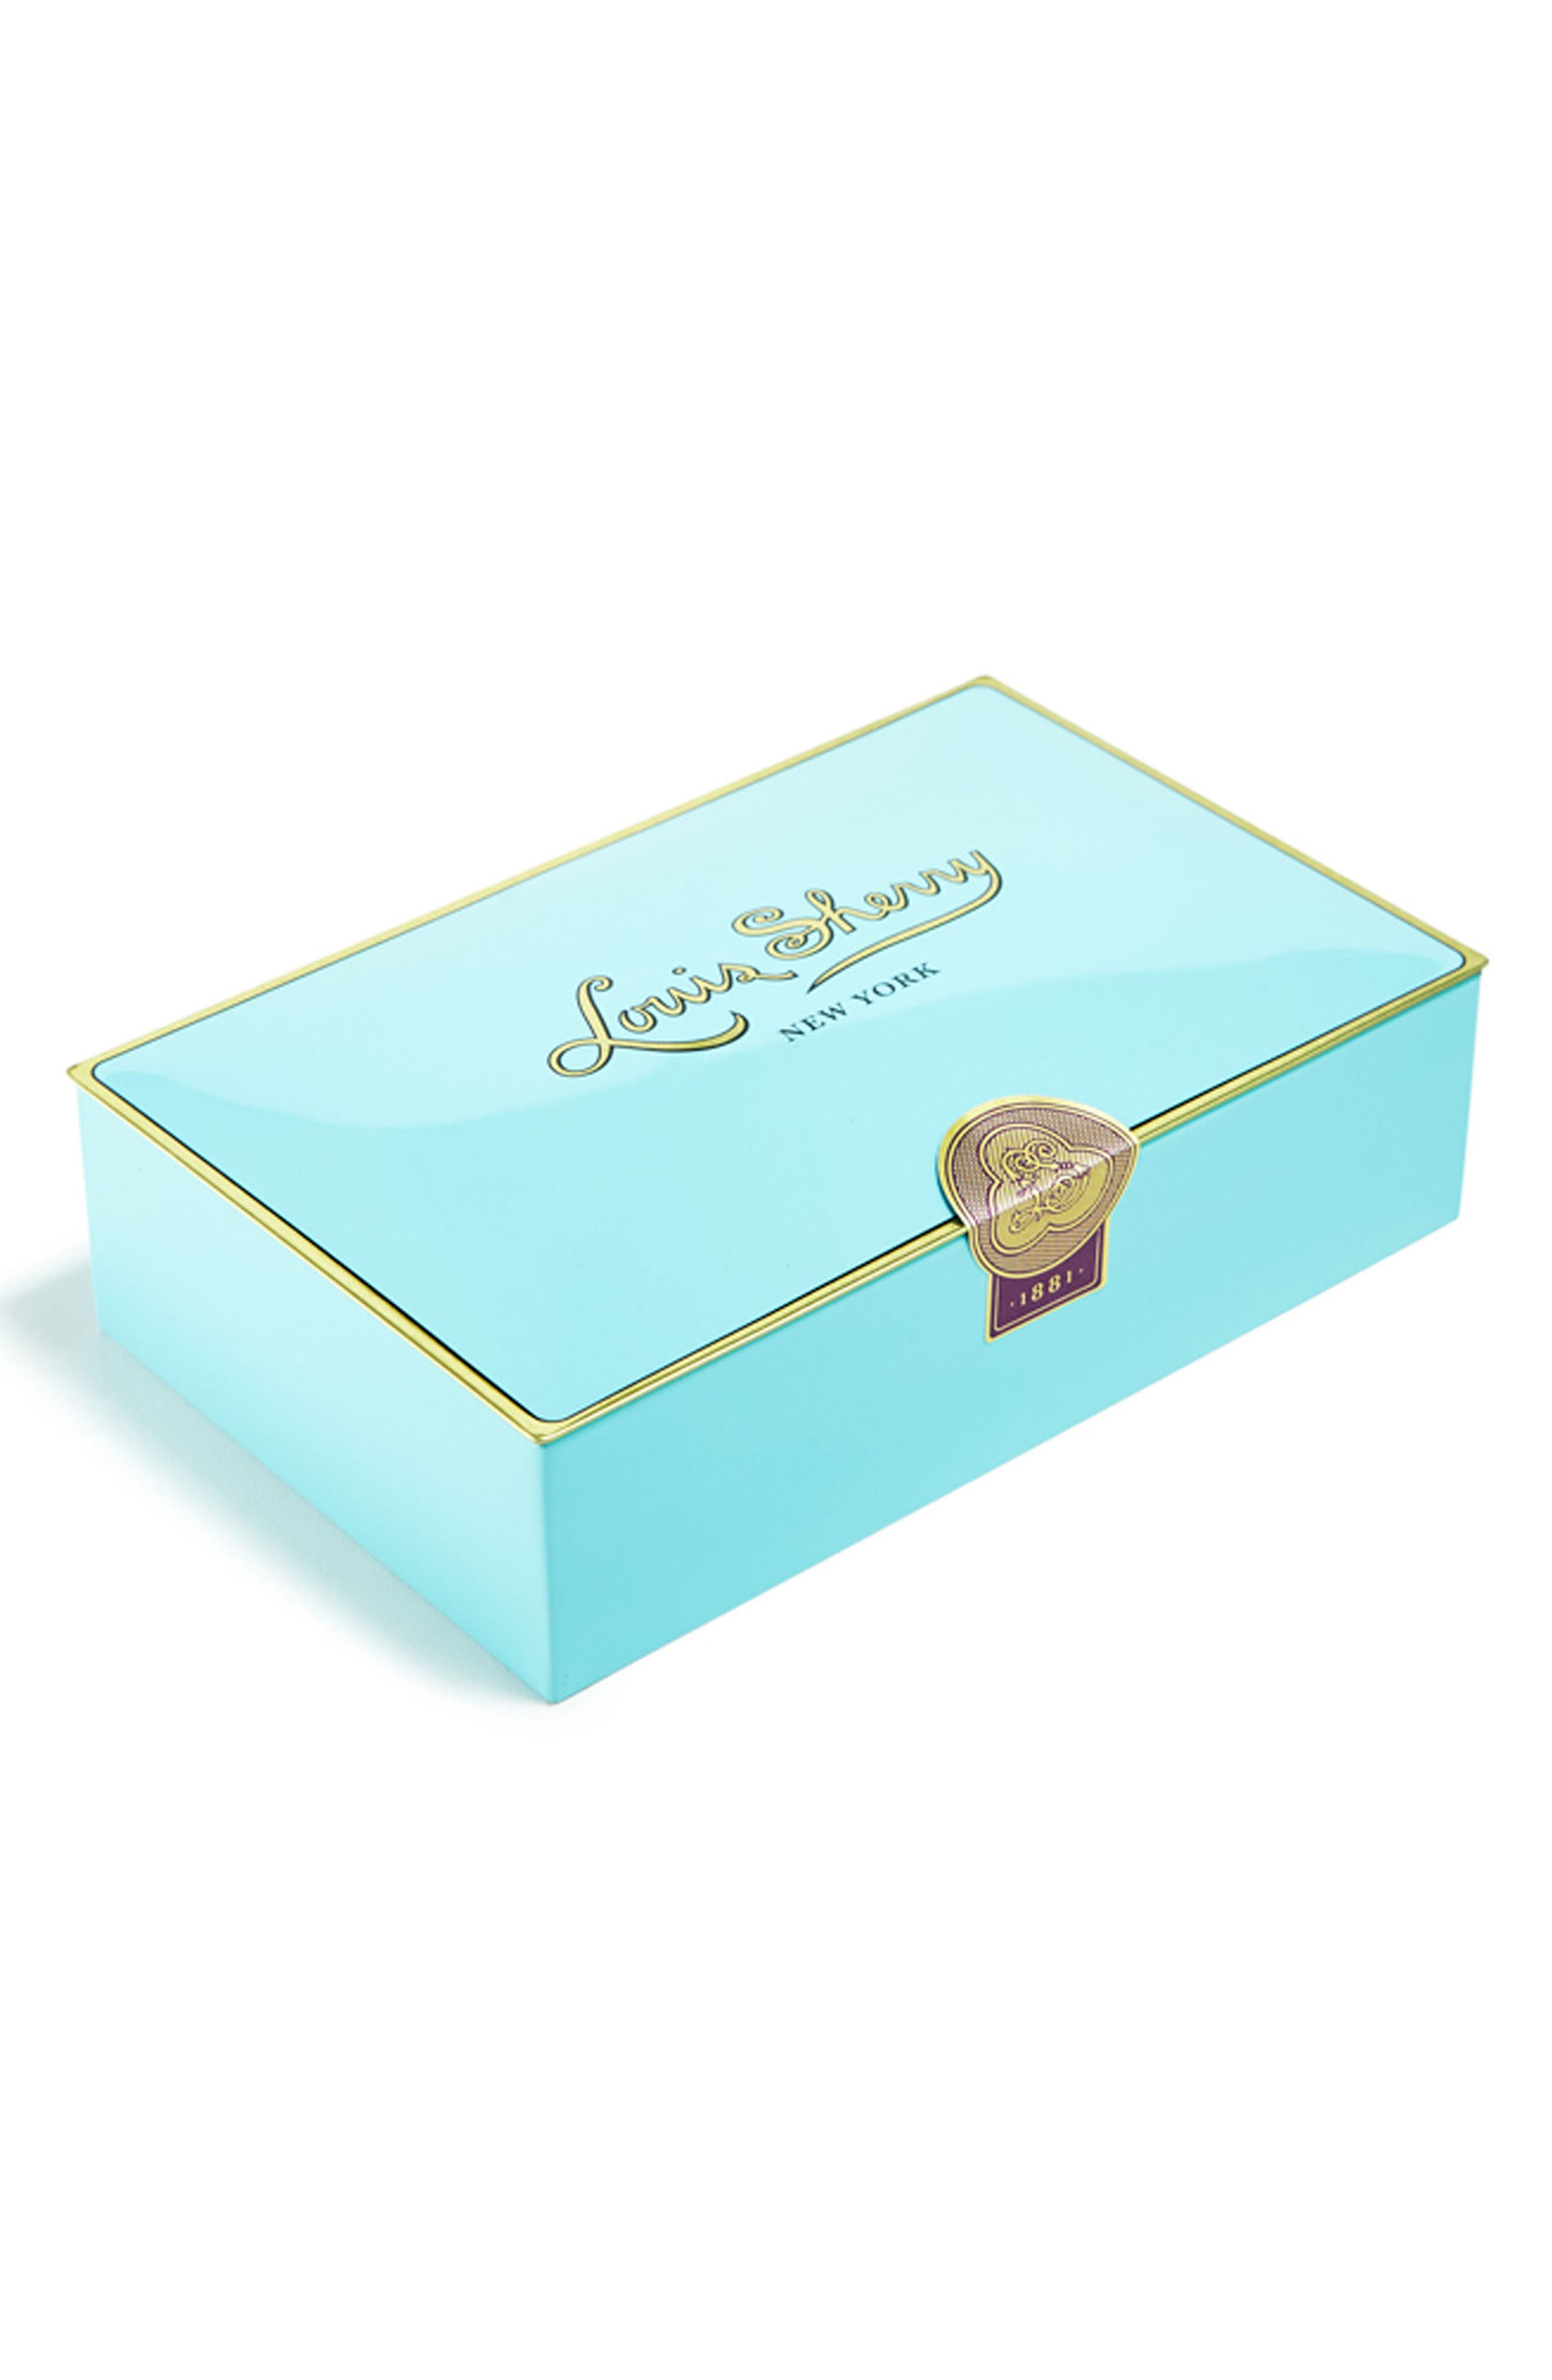 Louis Sherry 12-Piece Chocolate Truffle Tin,                         Main,                         color, NILE BLUE LIGHT BLUE